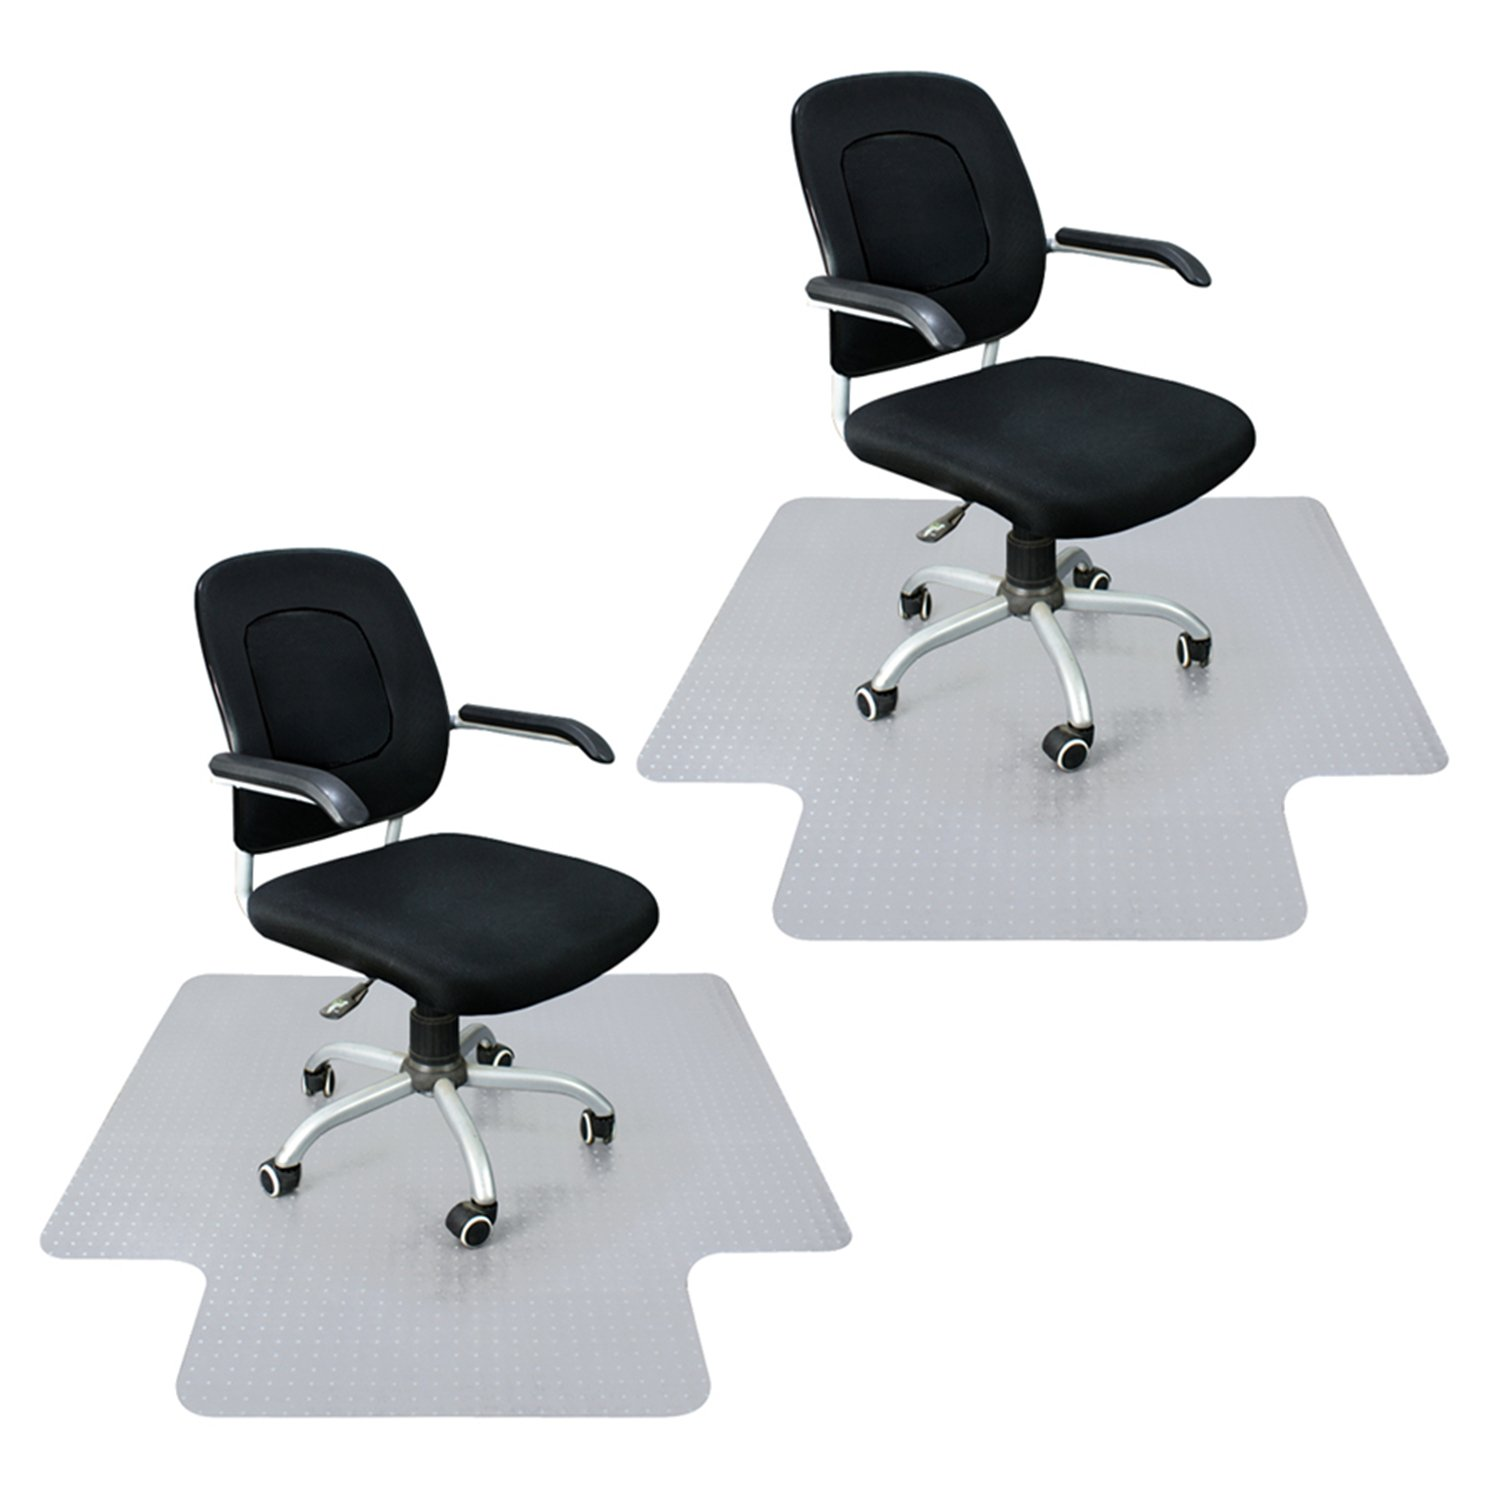 F2C 2 Packs 48-Inch by 36-Inch 1/8''(3MM) Thickness Plastic Floor Office Chair Mat 48'' X 36'' Clear Protector Office Chair Rug Carpet Floor Computer Desk (Pack of 2-48''x 36'')